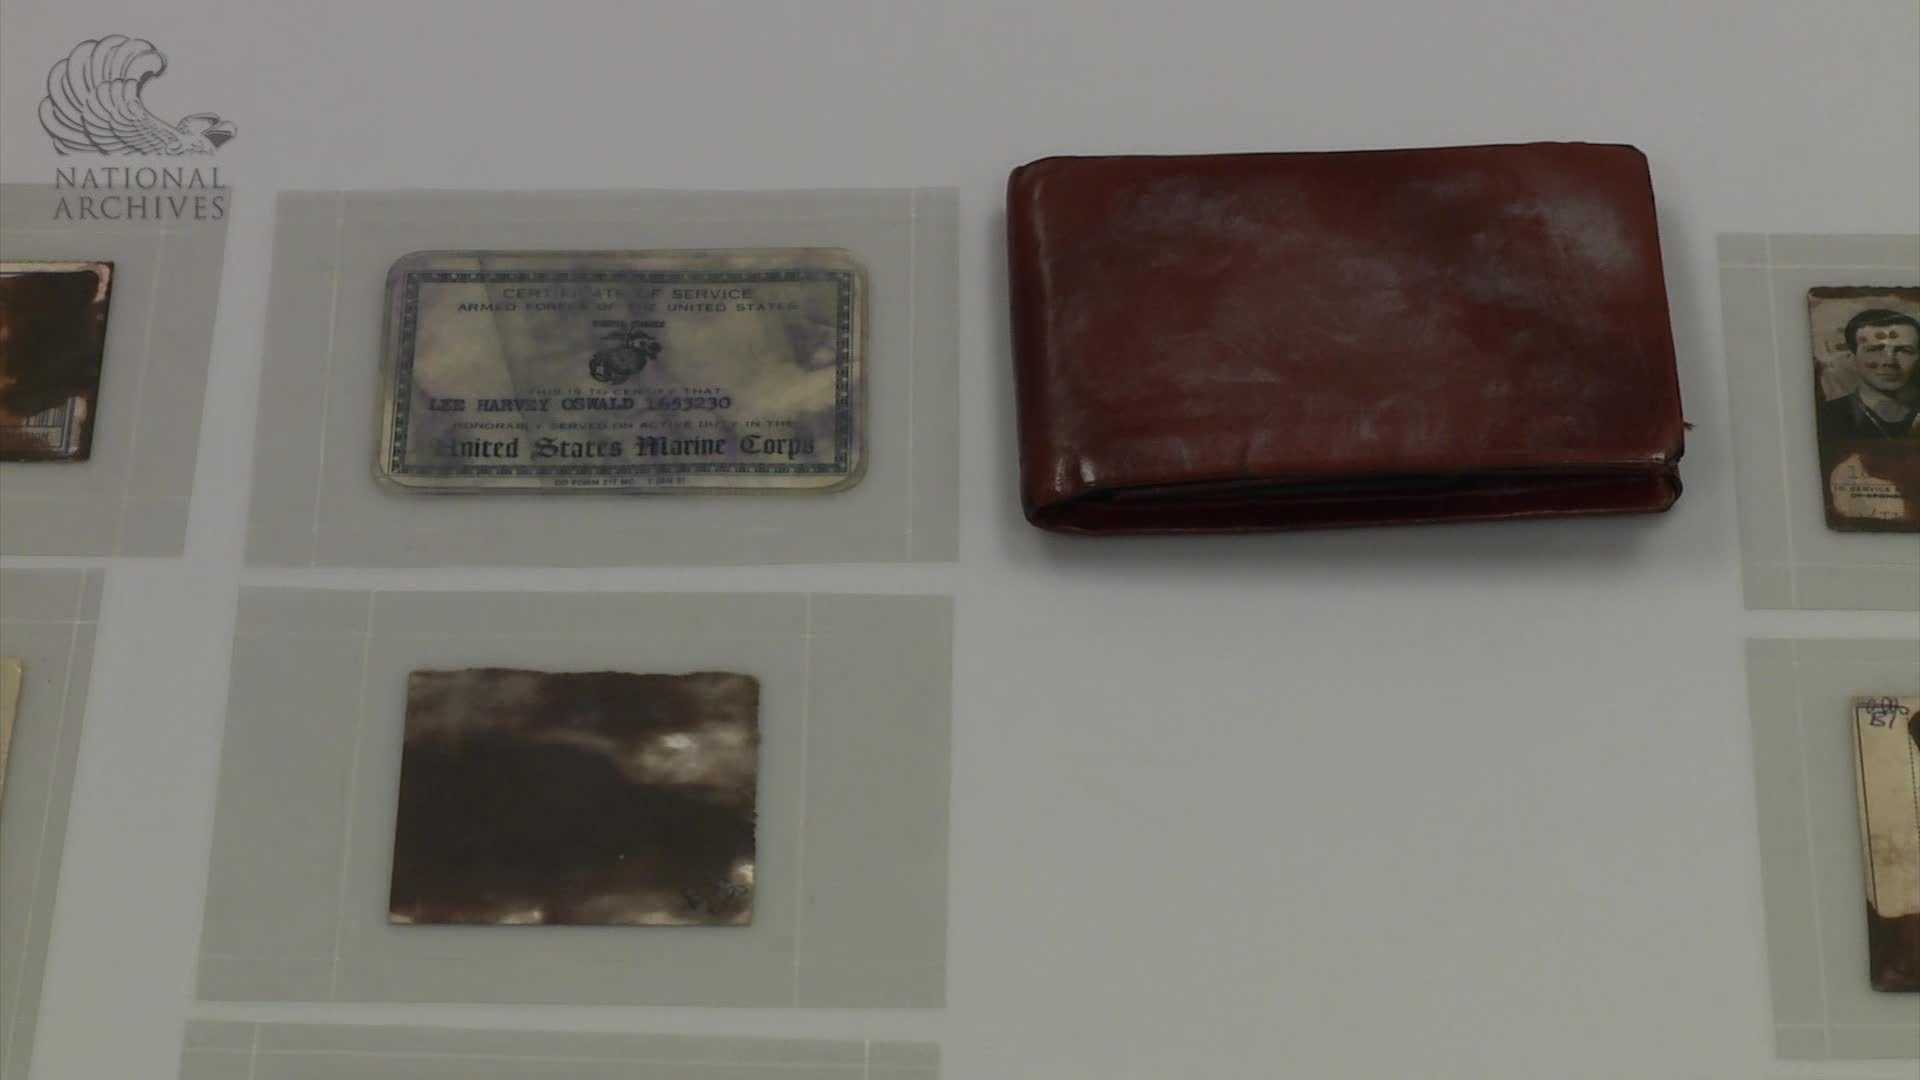 Among the items, the wallet carried by Lee Harvey Oswald when he was arrested for killing President Kennedy.